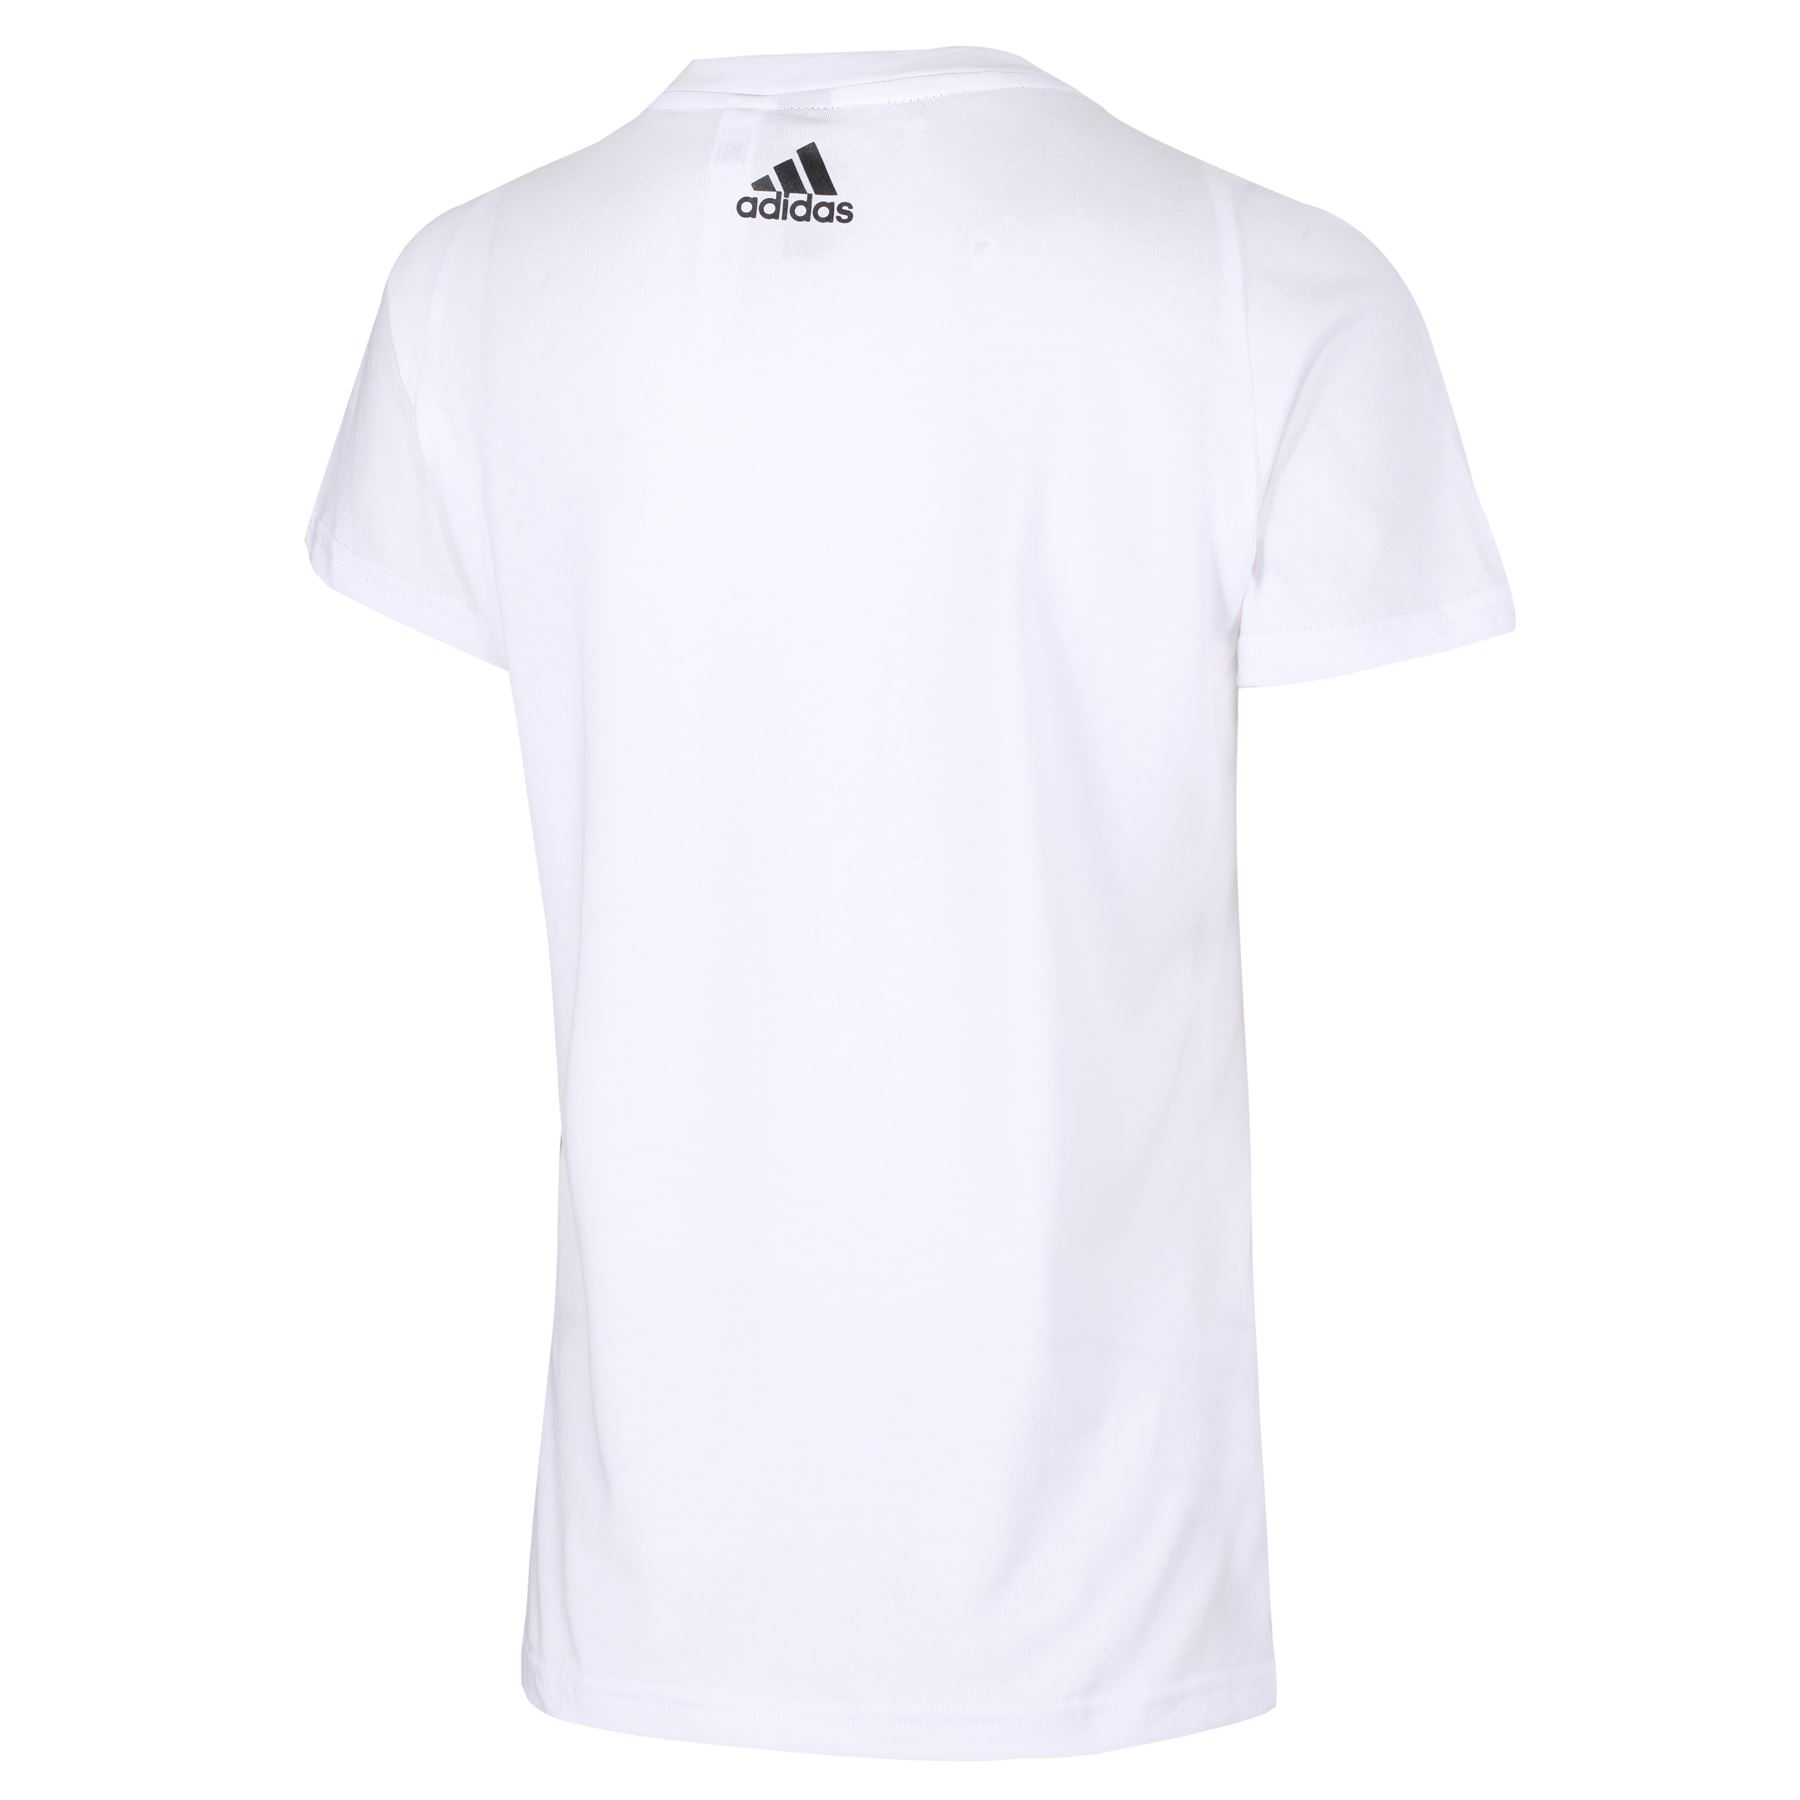 adidas-WOMEN-039-S-ESSENTIALS-LINEAR-T-SHIRT-GYM-BLACK-PINK-WHITE-NAVY-GIRLS-LADIES thumbnail 23